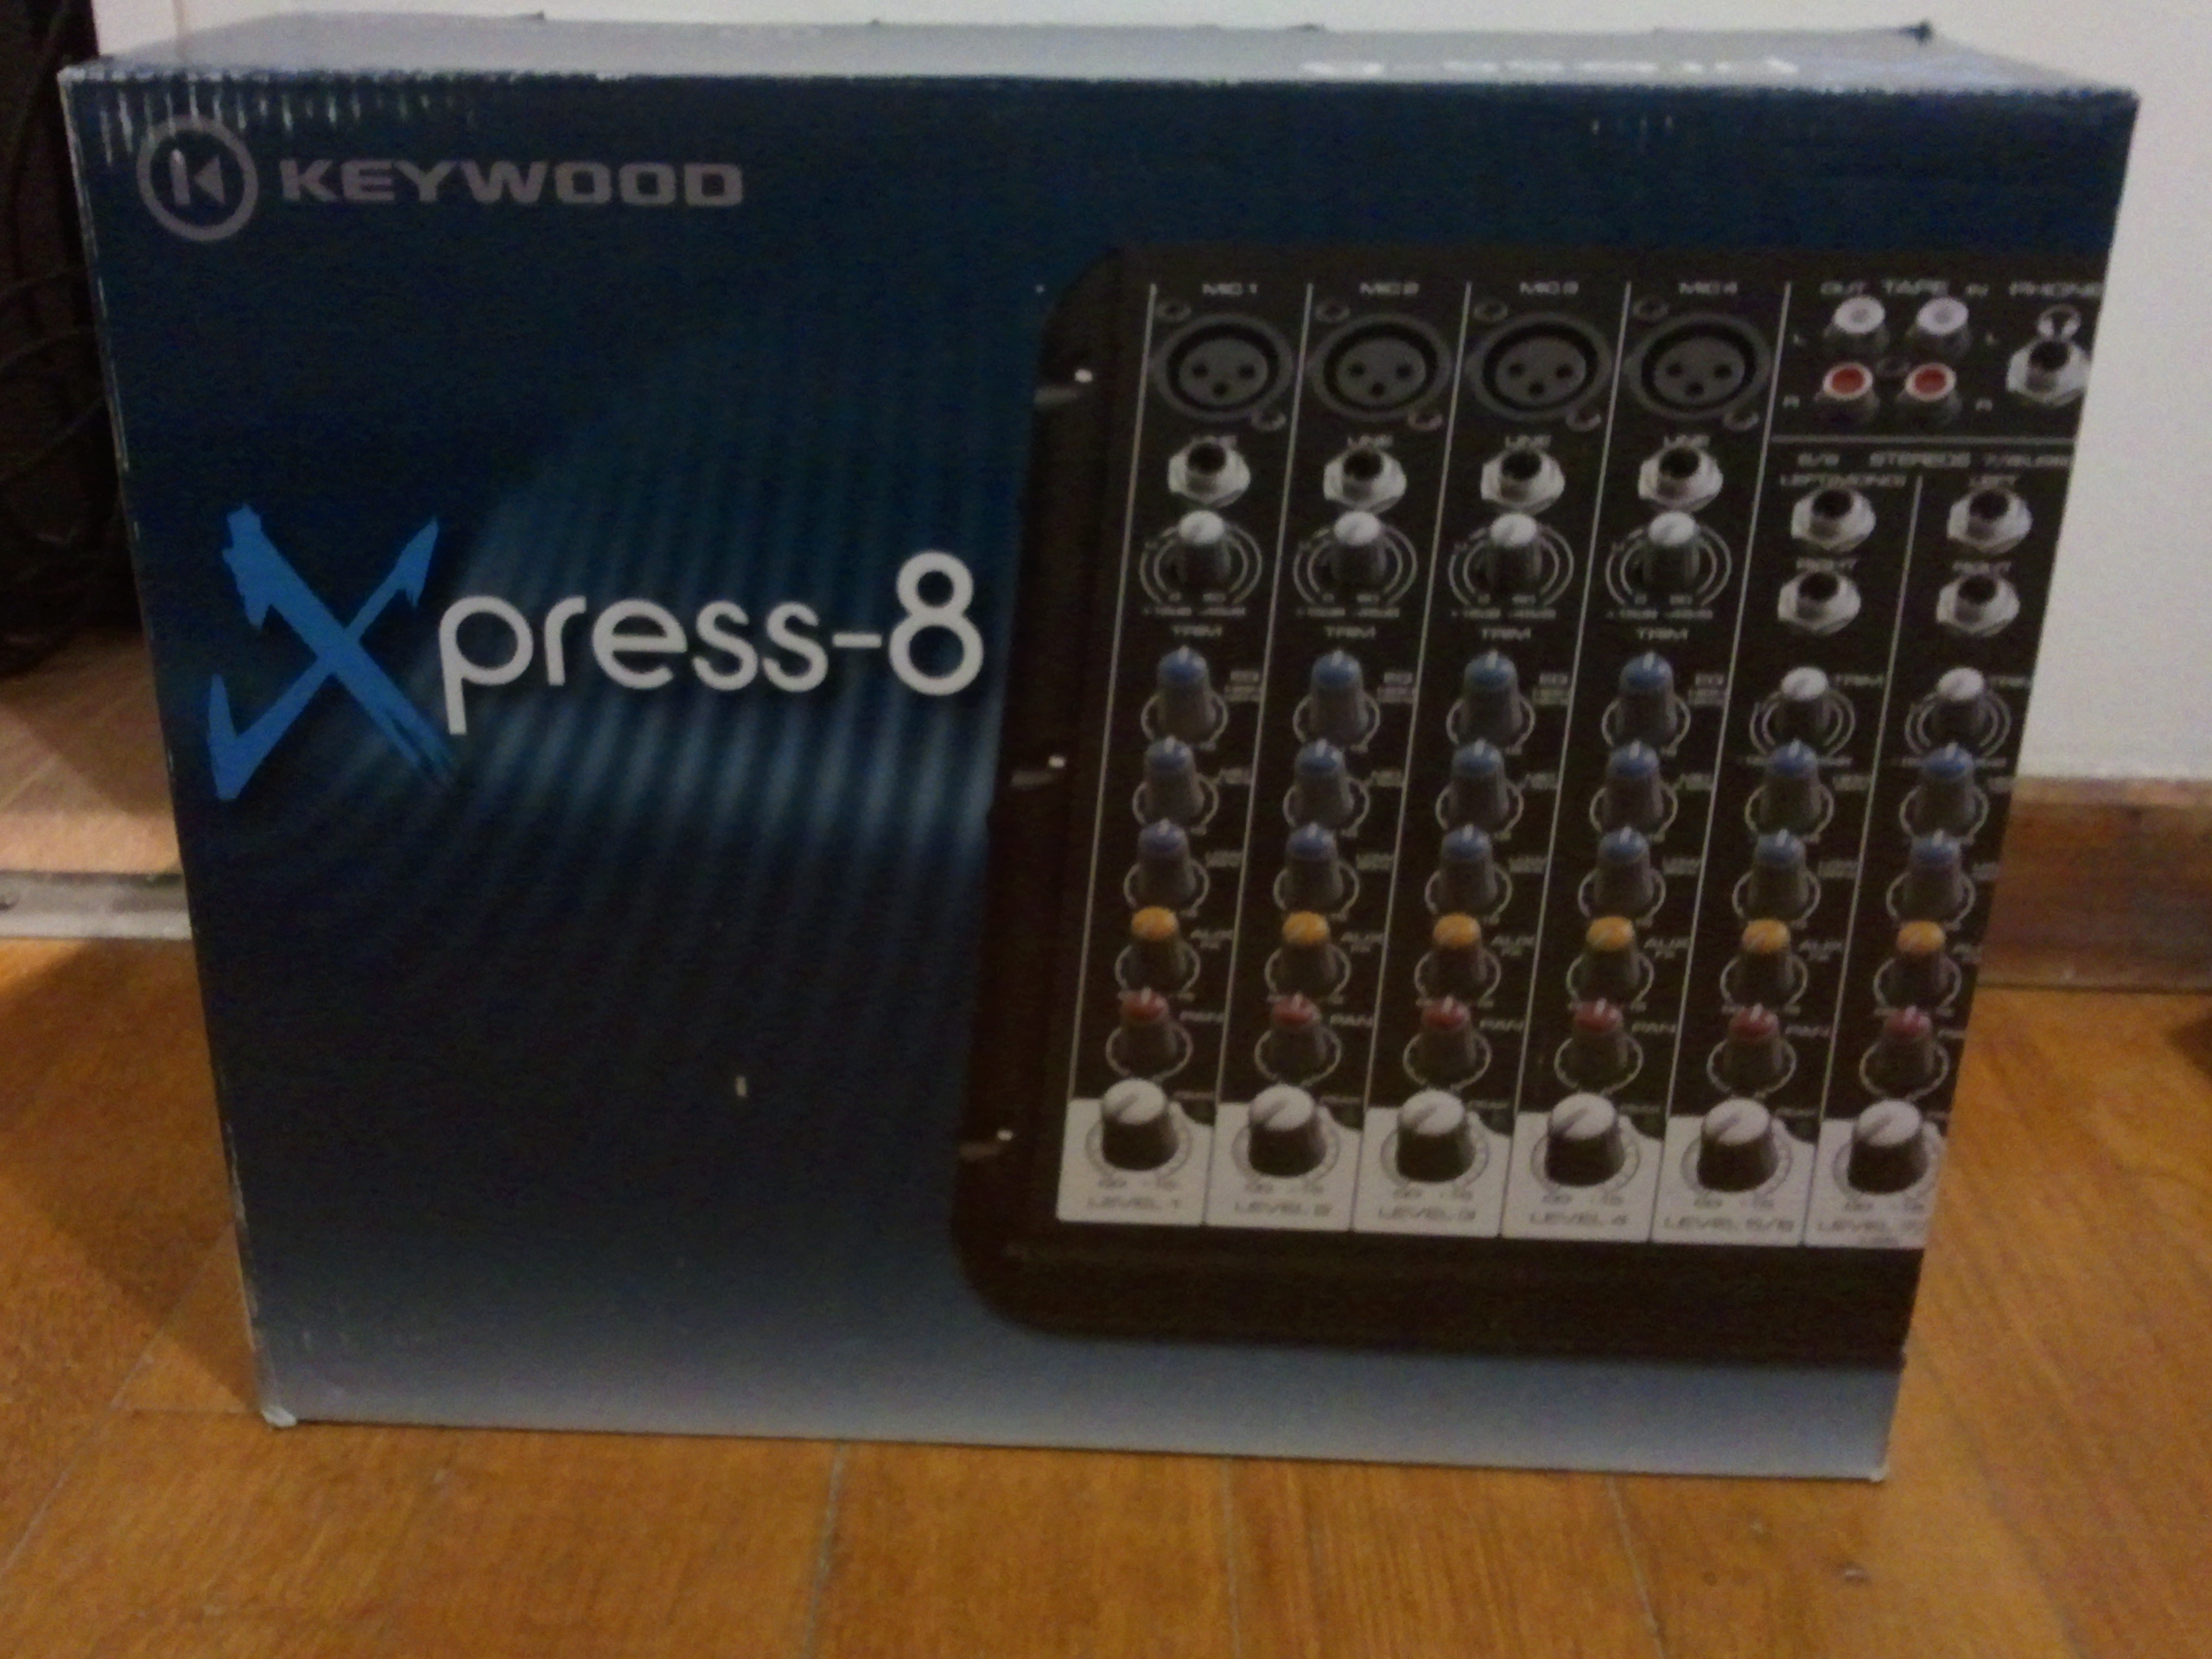 table de mixage xpress-6 keywood